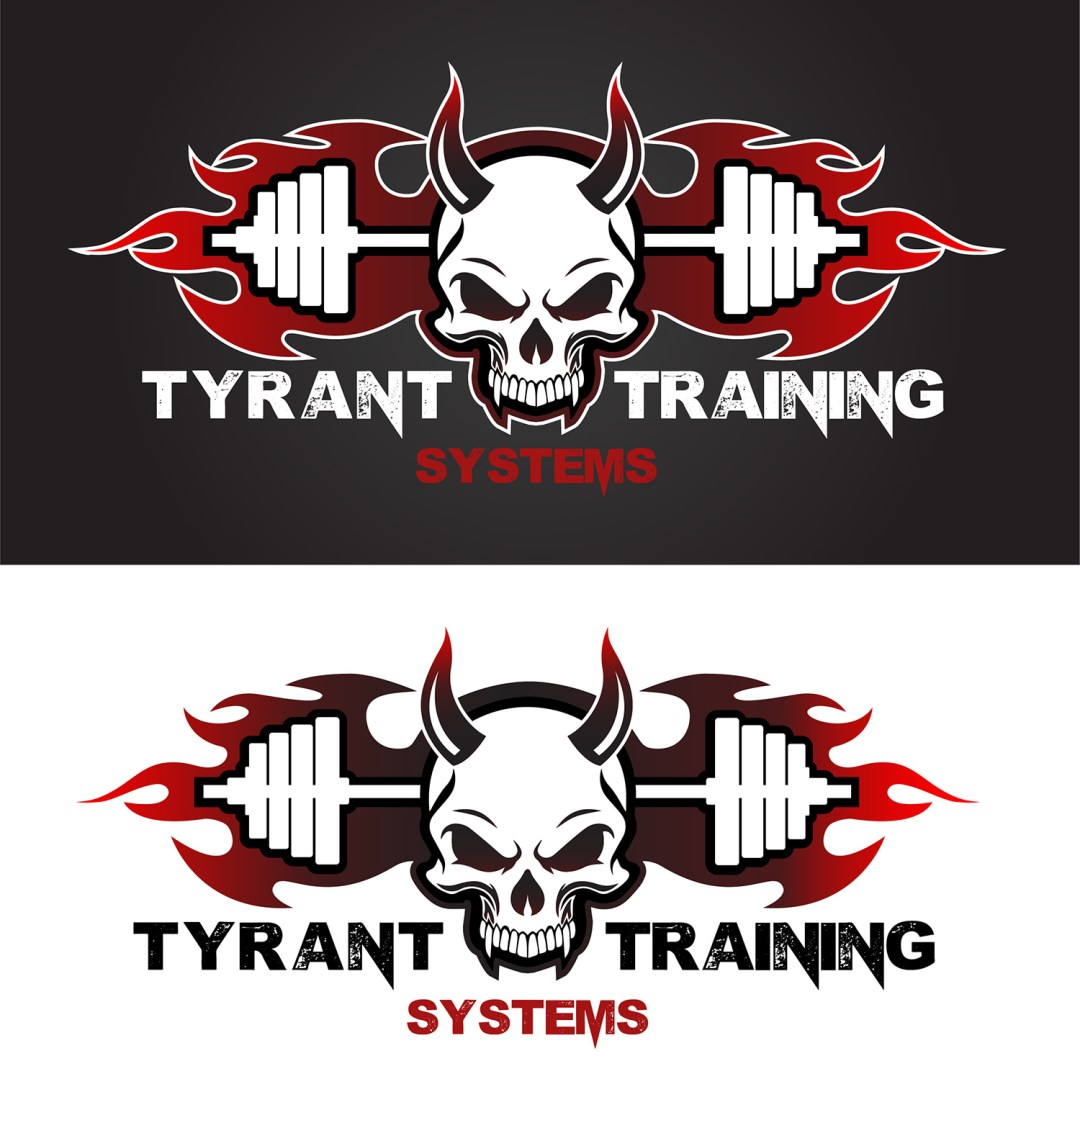 Tyrant-Training-Systems-01